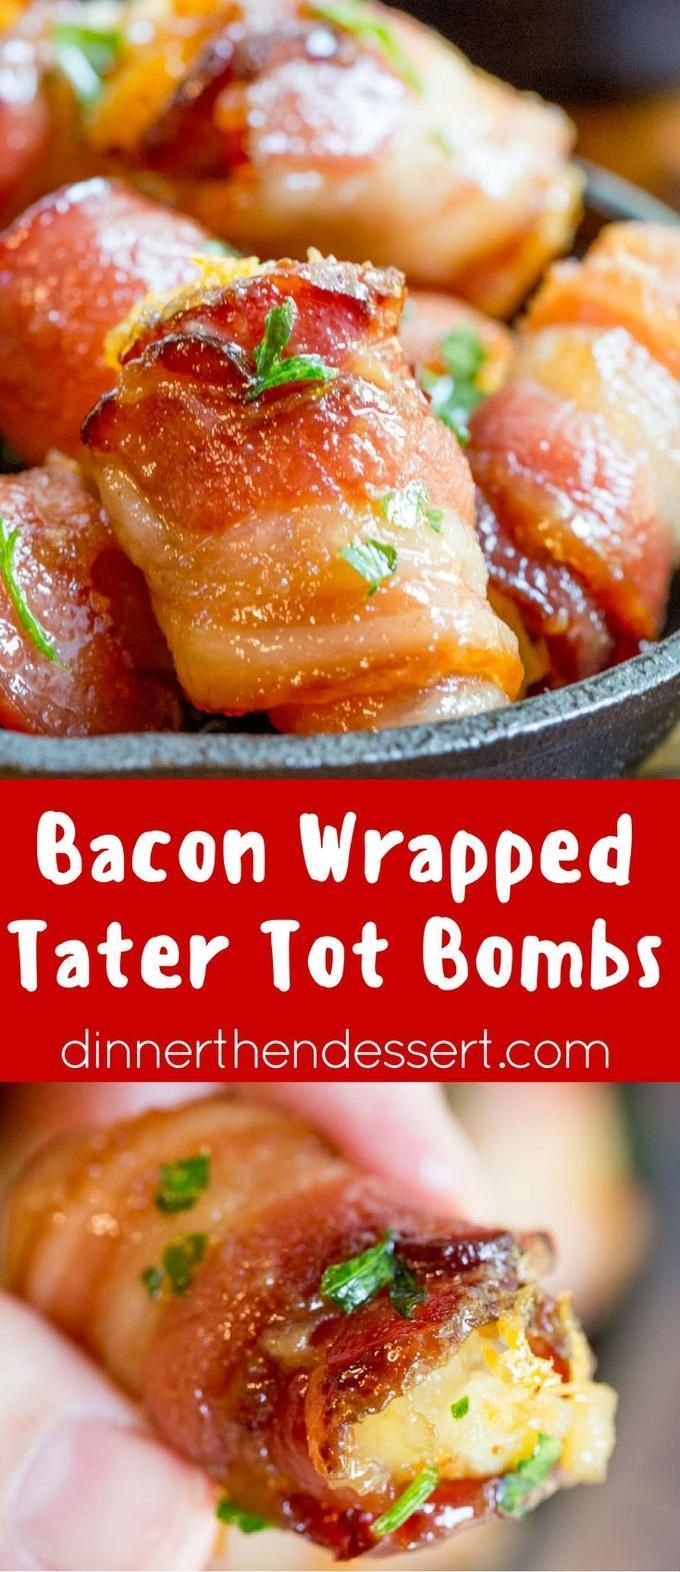 Bacon Wrapped Tater Tot Bombs are an easy appetizer of tater tots and sharp cheddar cheese wrapped in thick cut bacon, rolled in brown sugar and baked. http://dinnerthendessert.com